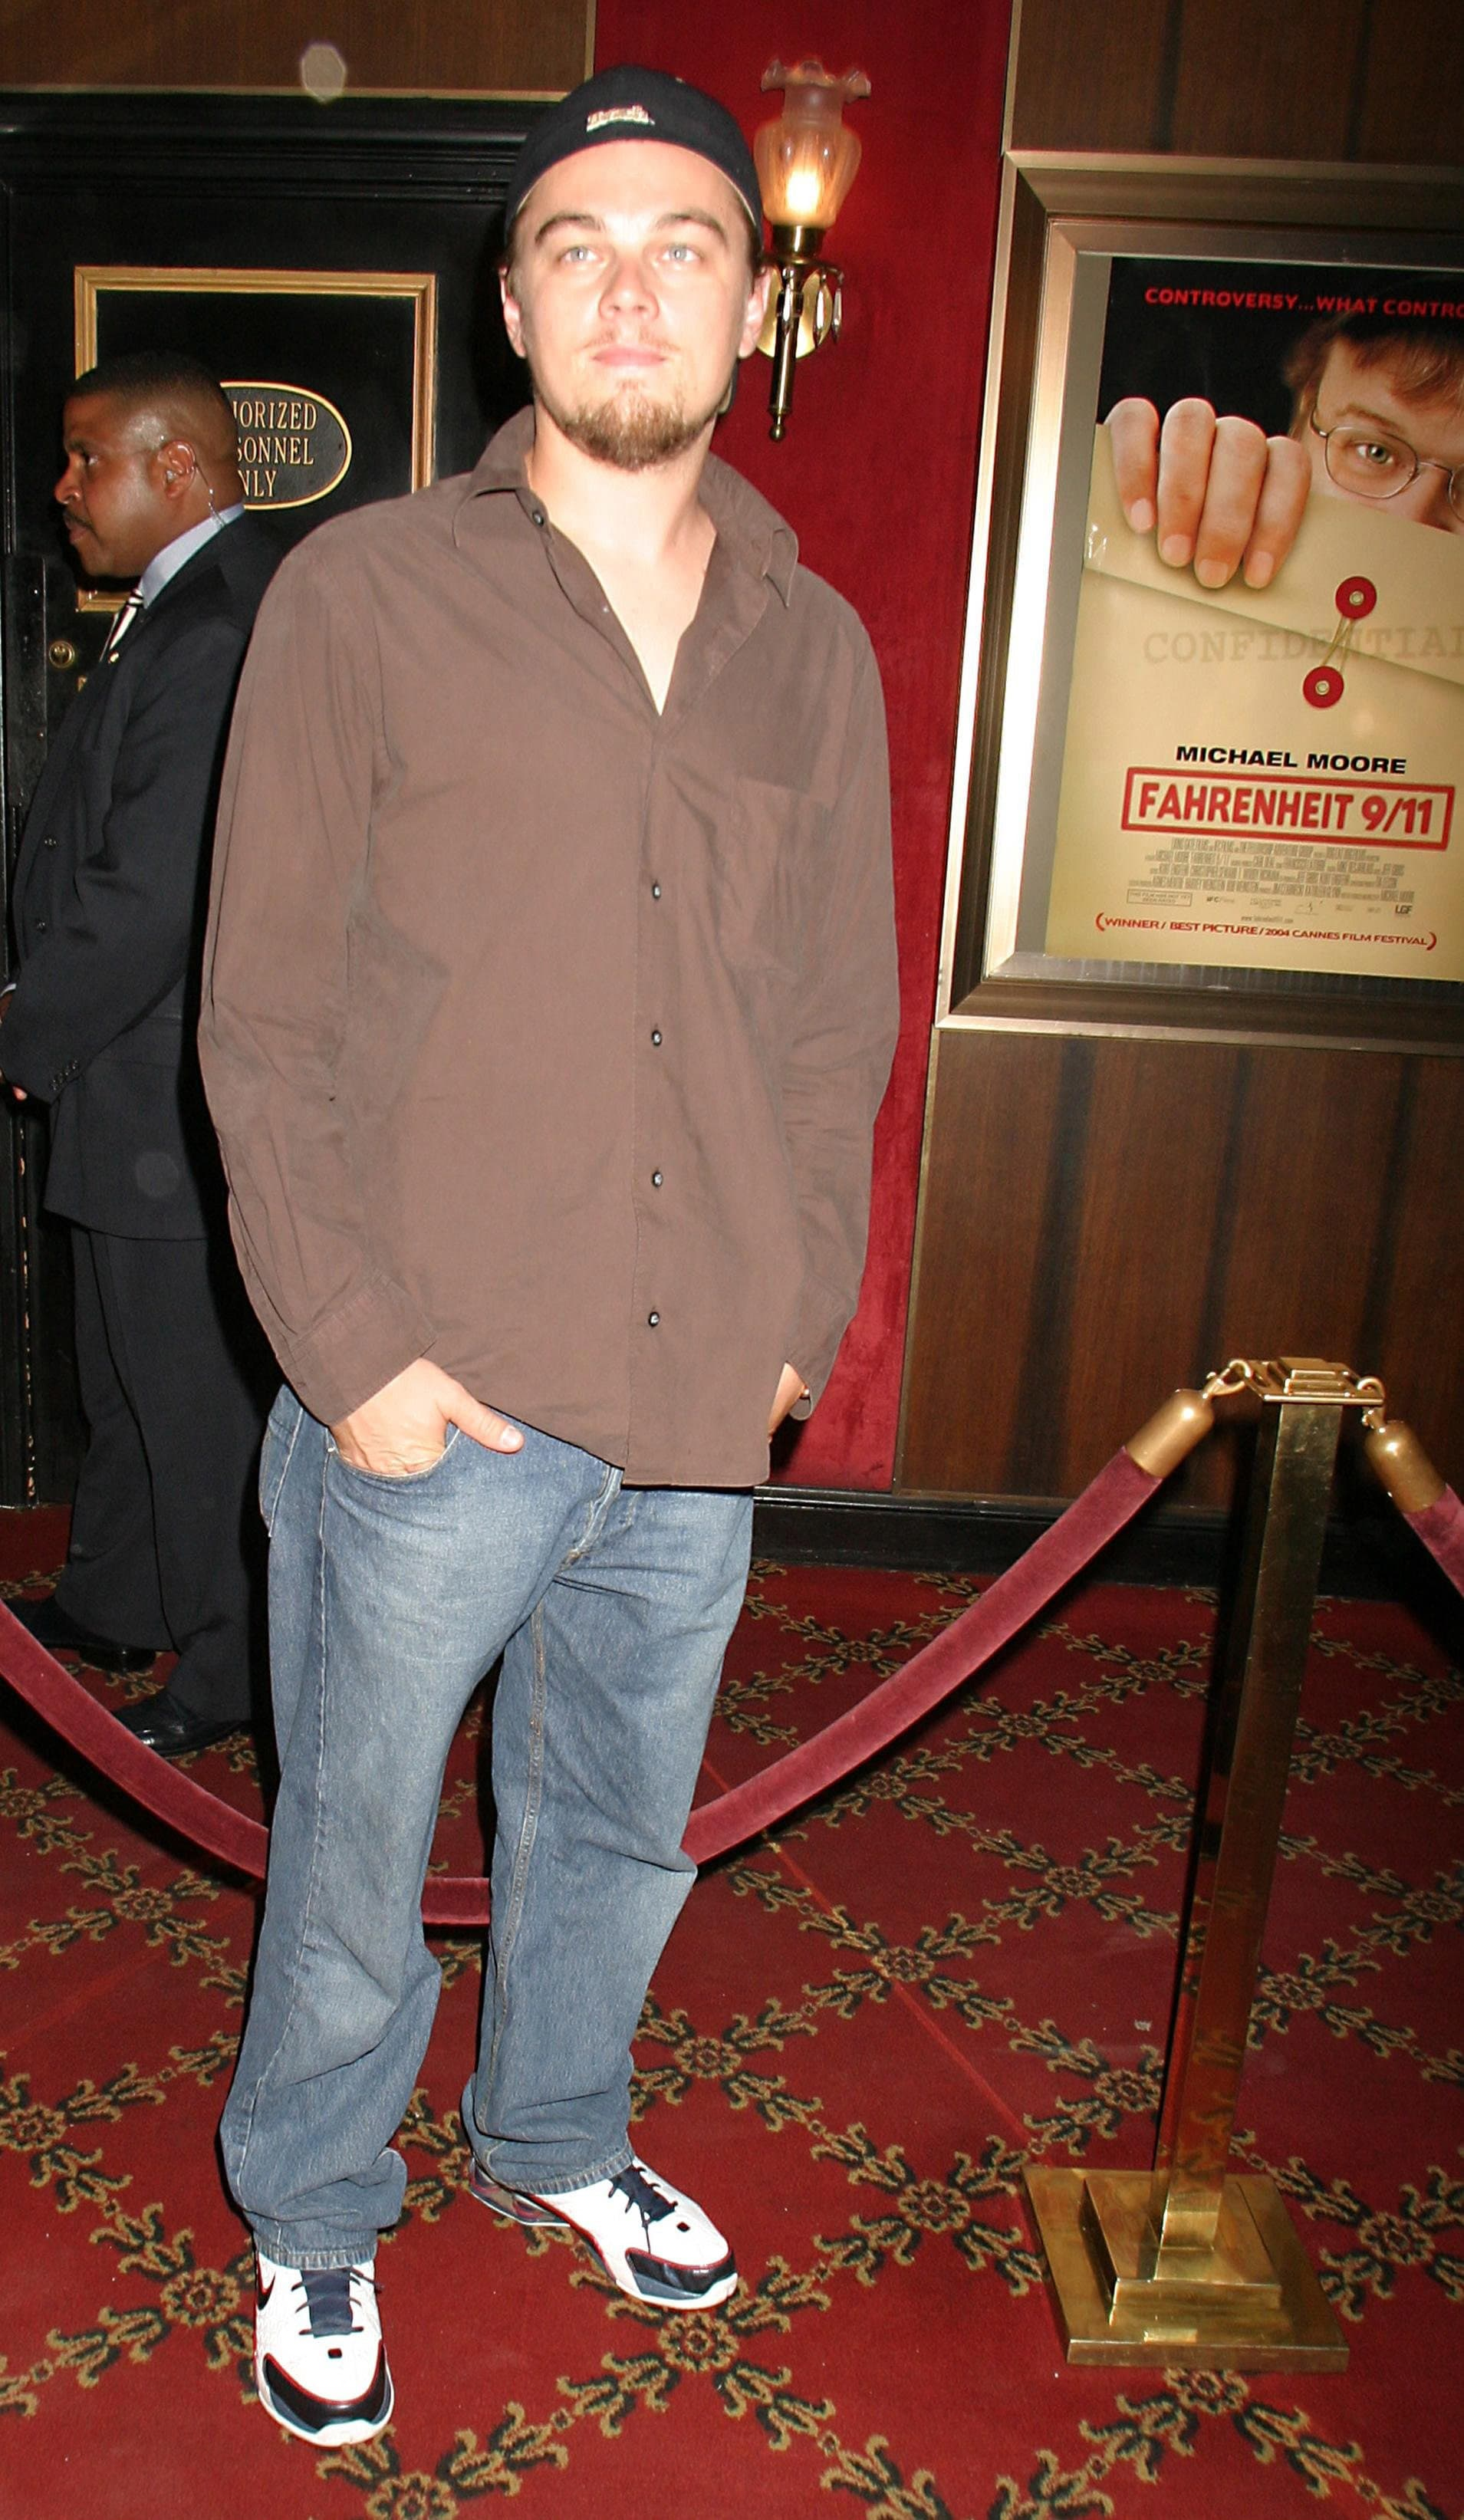 Leo is wearing a backwards baseball hat, an oversized brown button-down that is untucked, a pair of baggy light wash jeans, and Nike sneakers.